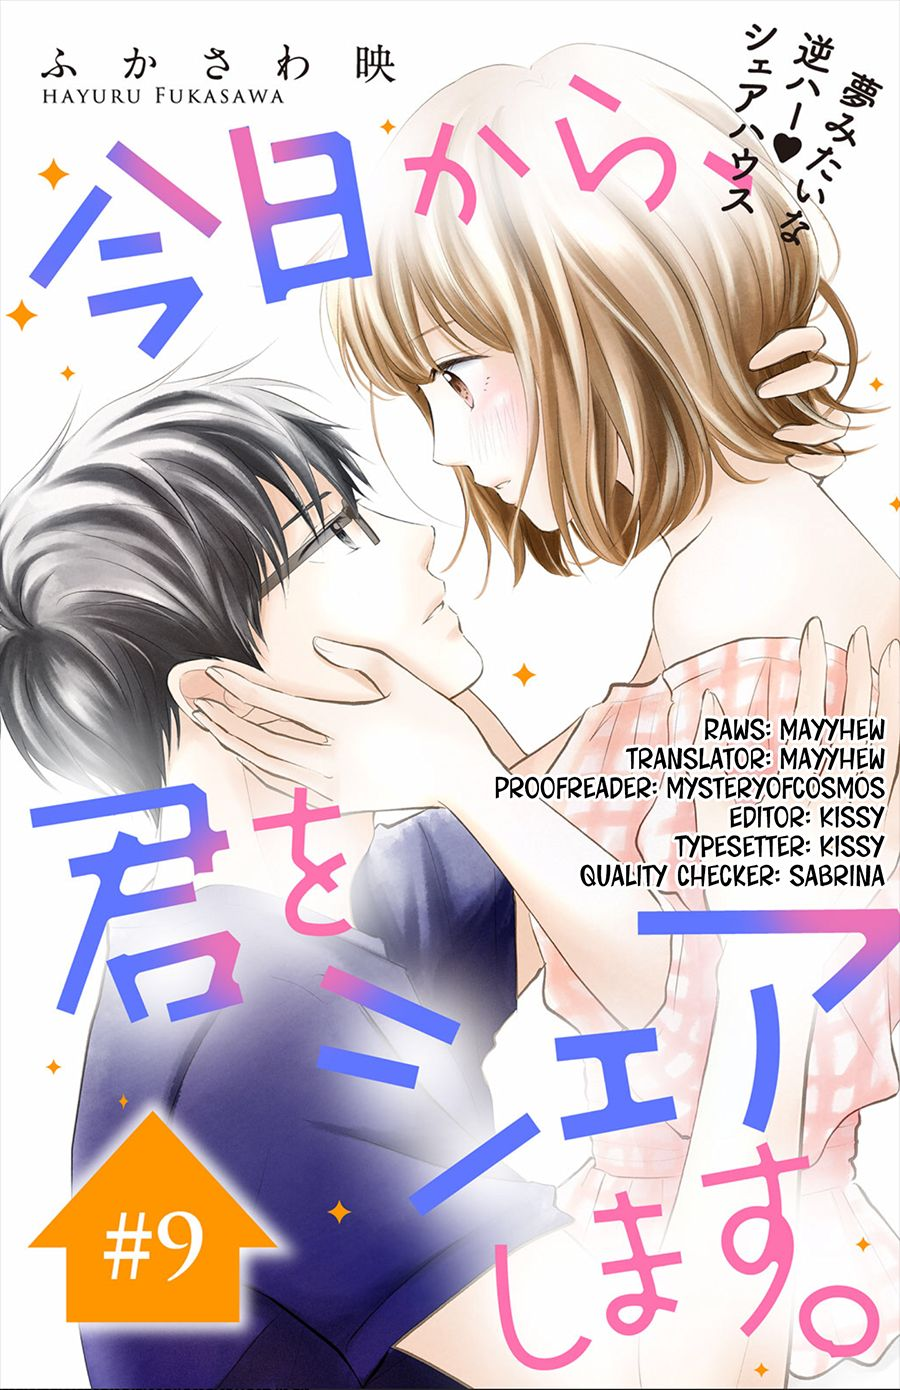 Kyou Kara Share wo Shimasu - chapter 9 - #2